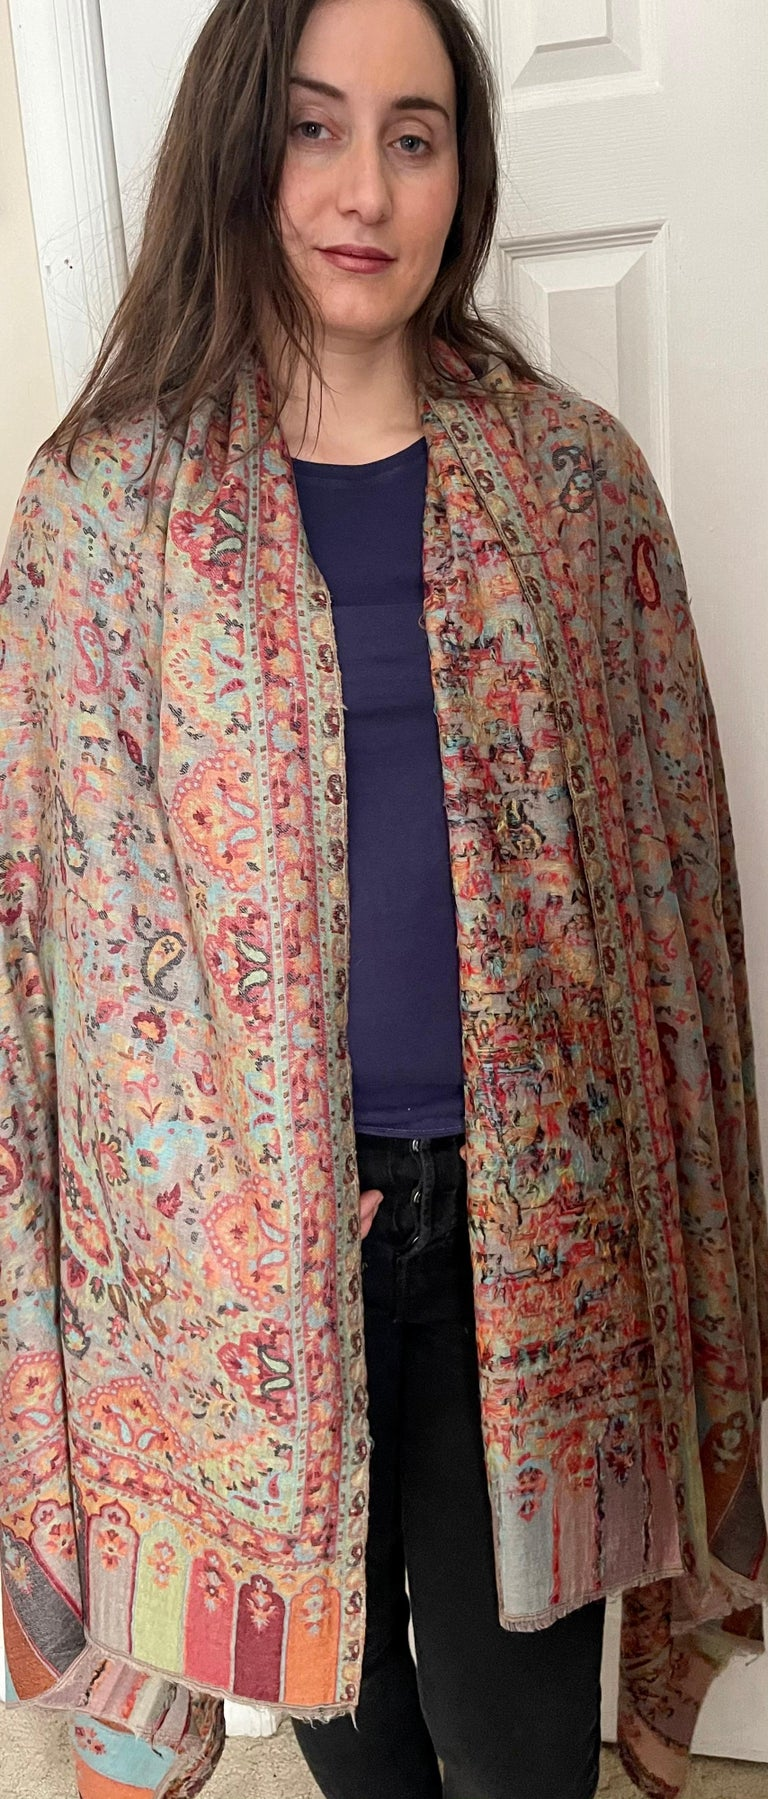 Multi Color Traditional Floral Kani Pashmina Shawl 83X42 Inches For Sale 8